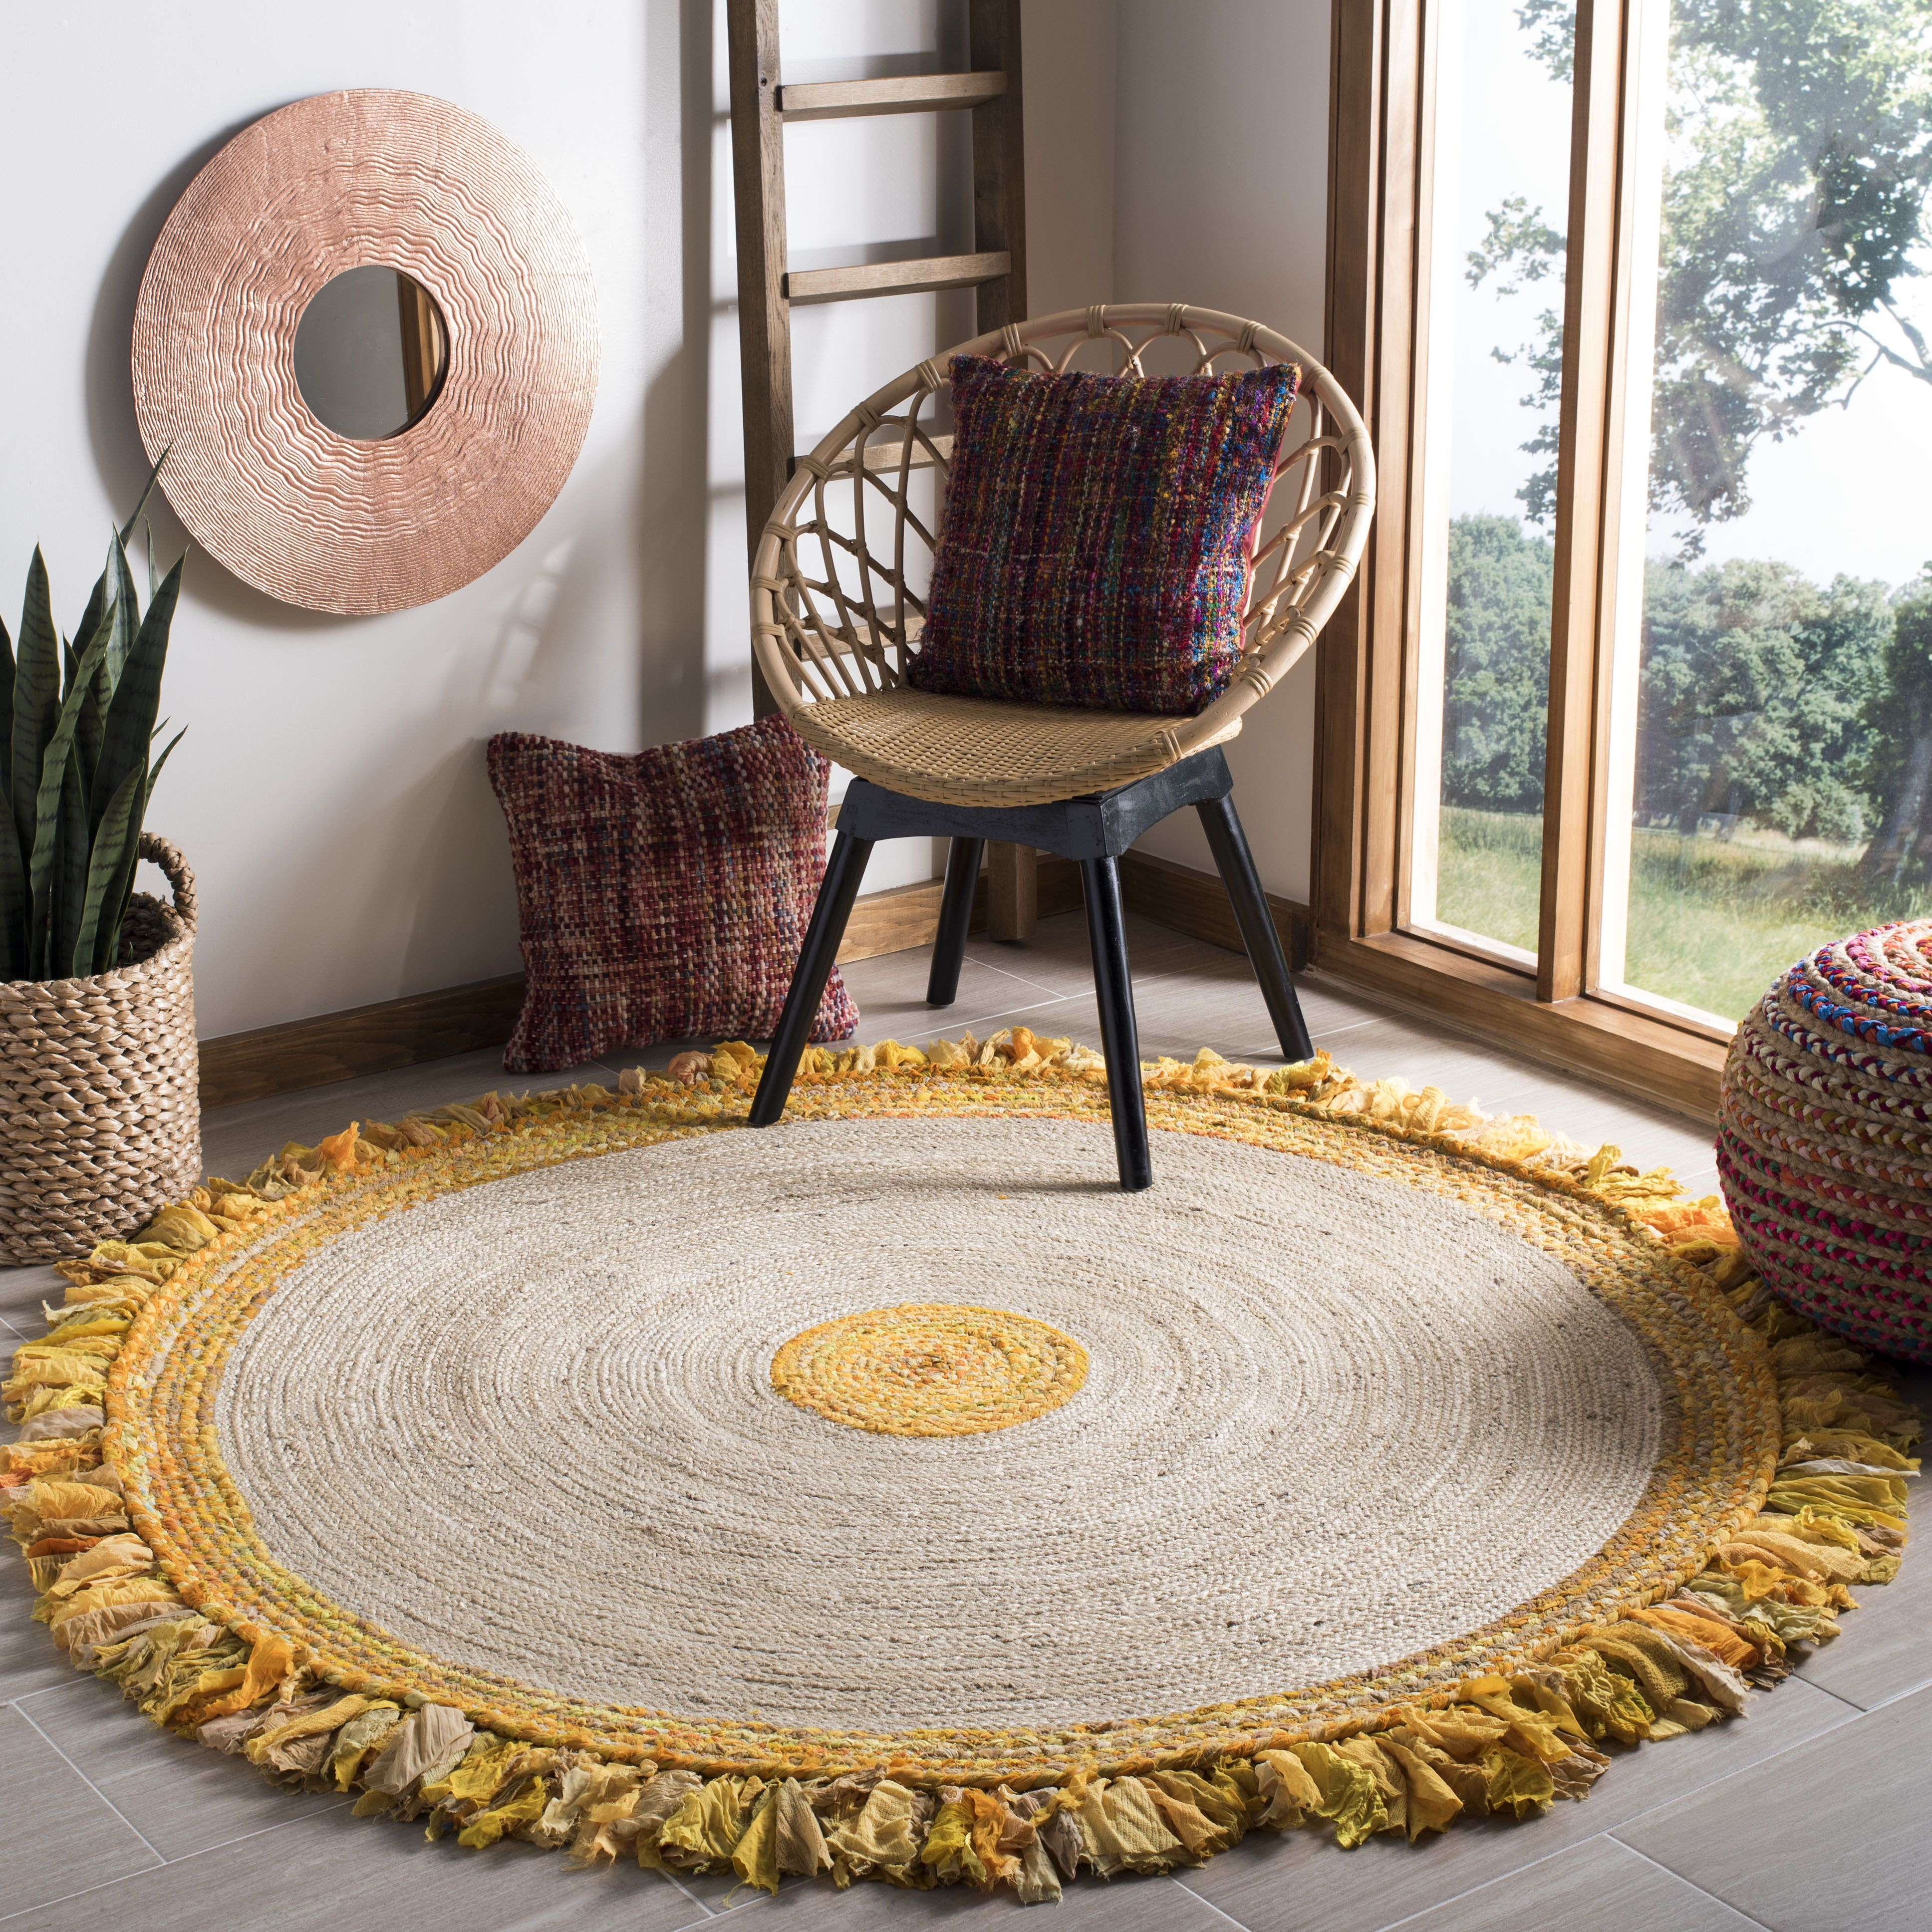 Home In 2020 Floor Decor Braided Area Rugs Rugs